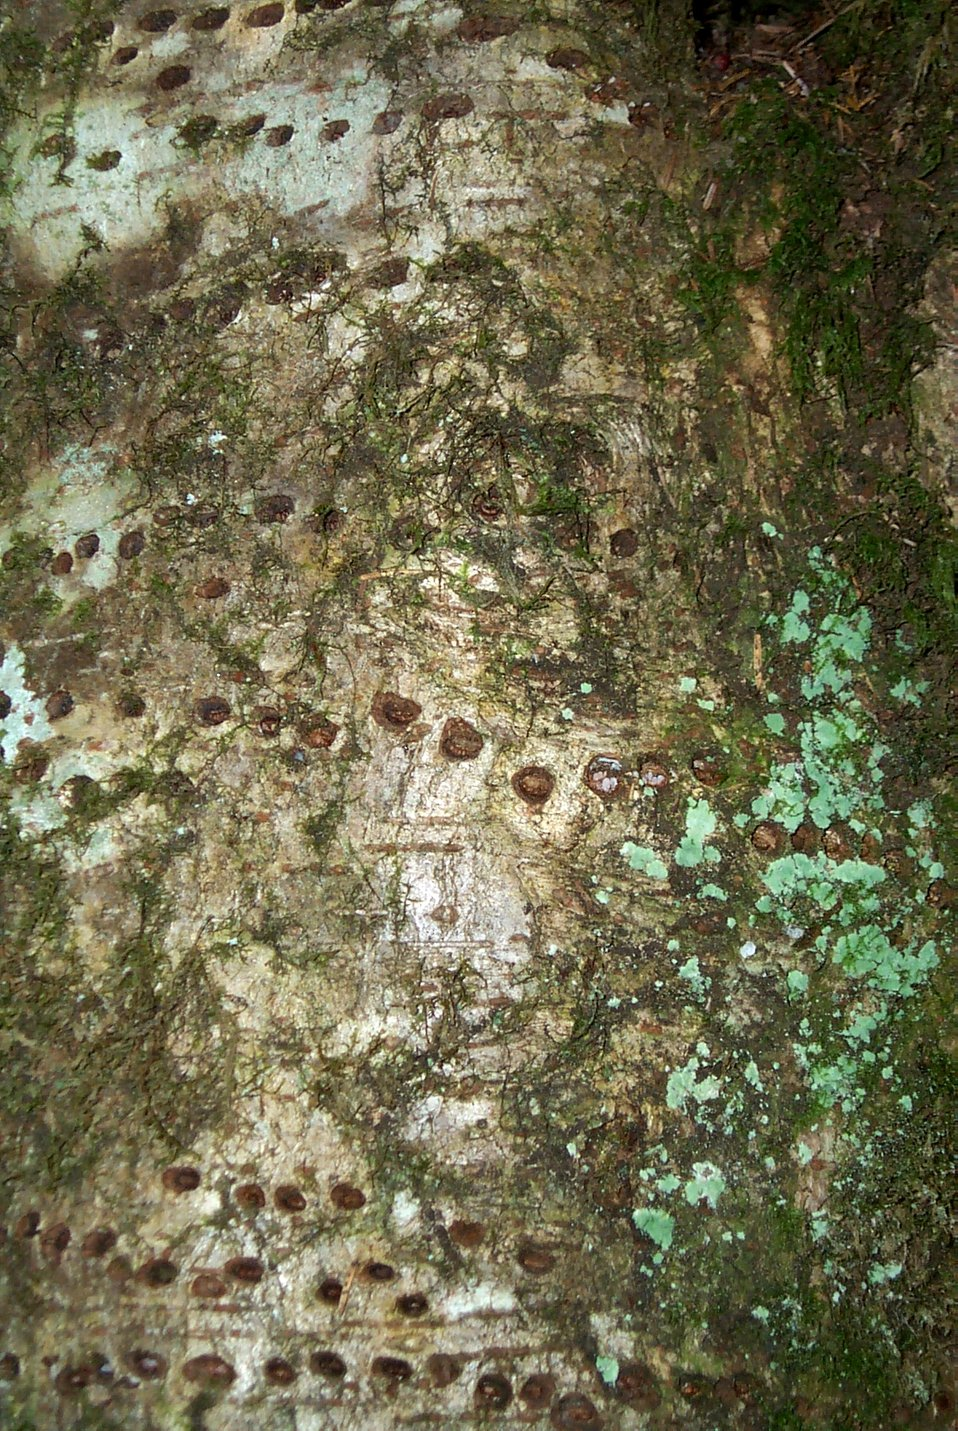 Lichen and other patterns on an alder tree on the Oregon coast.